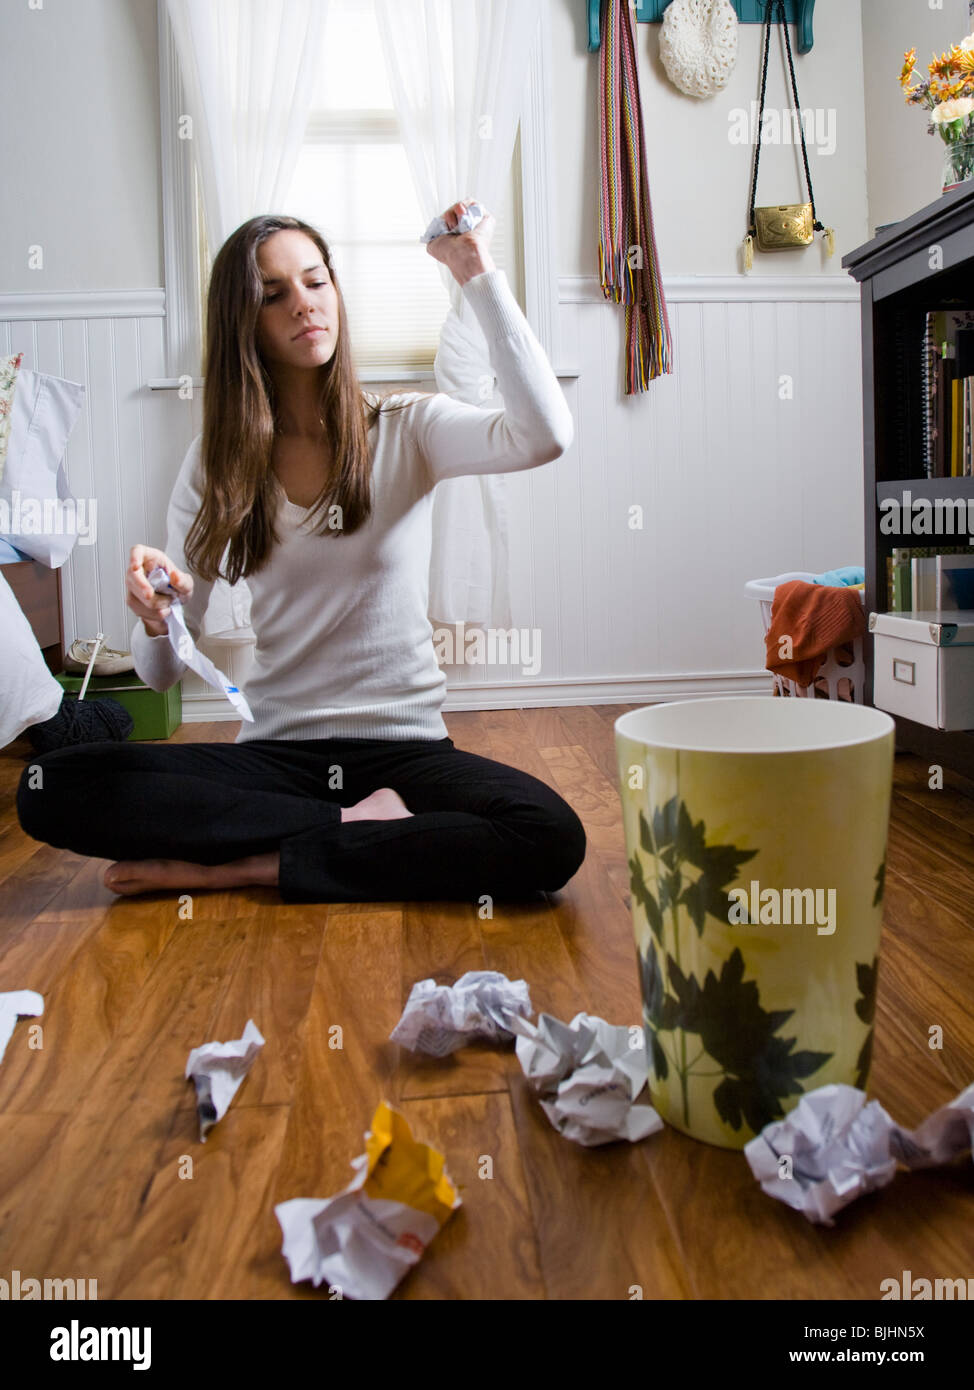 woman sitting on the floor throwing balls of paper into the wastebasket - Stock Image